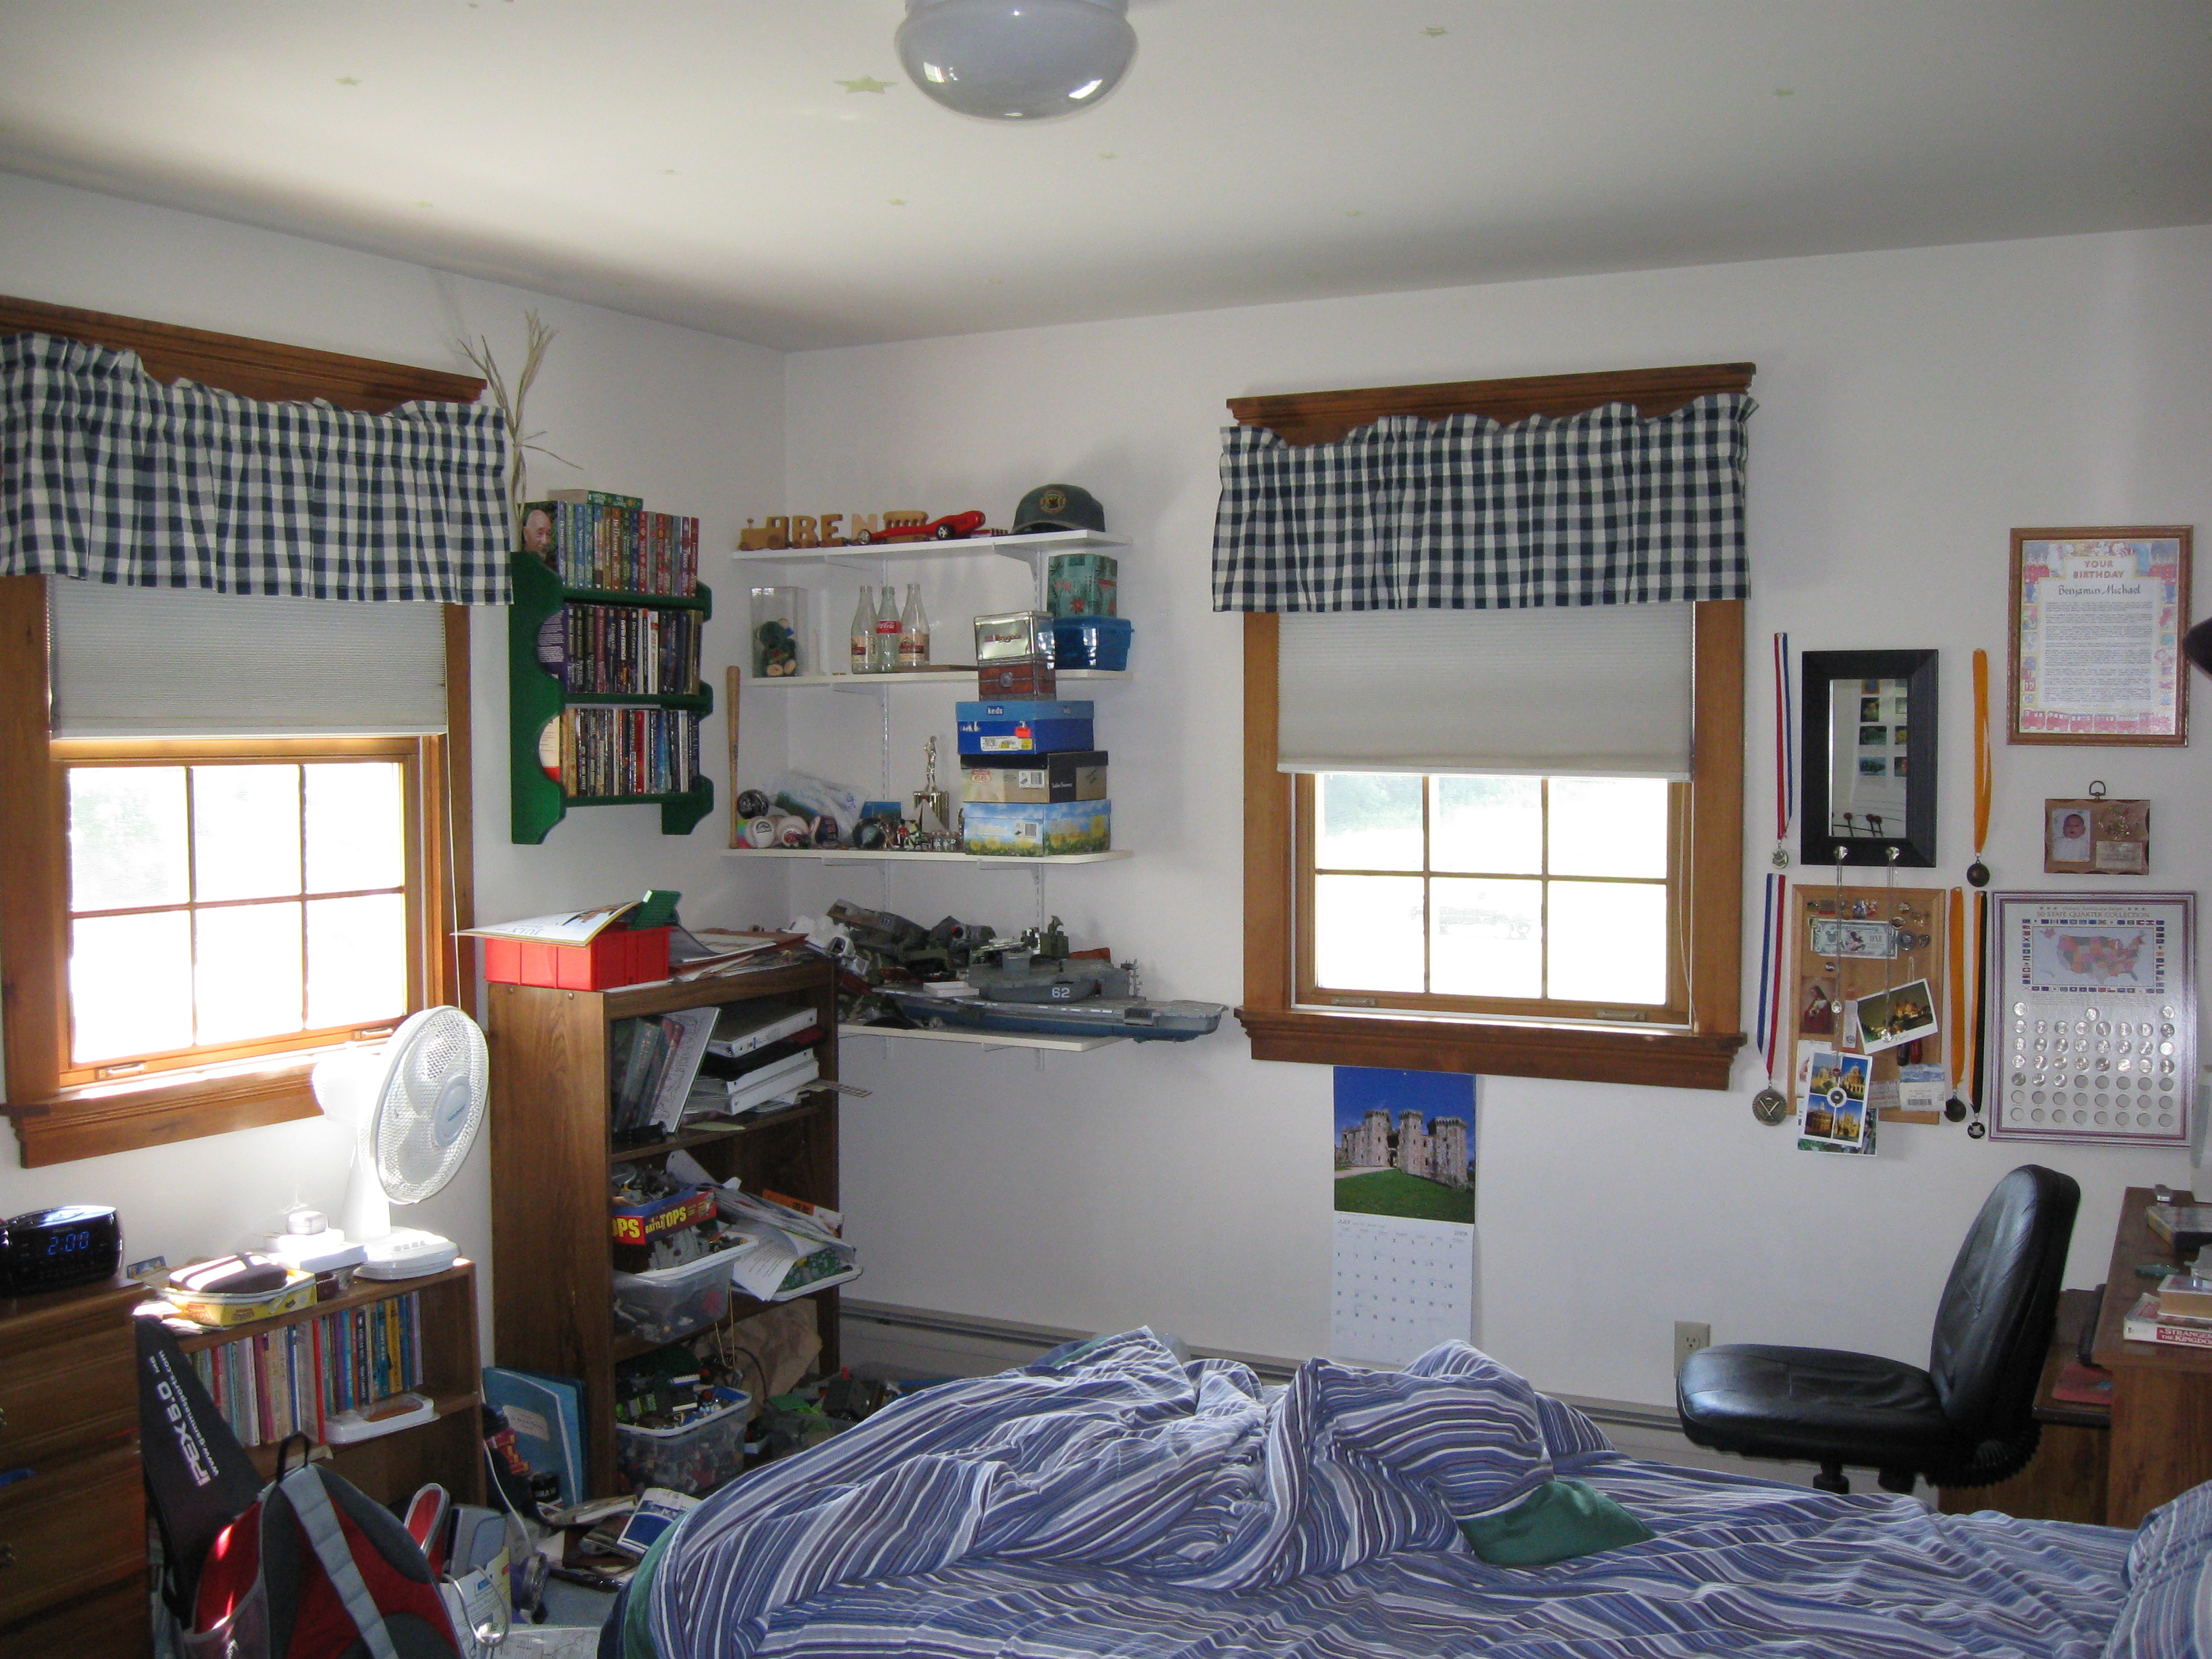 File Teenager Room 167 Jpg Wikimedia Commons